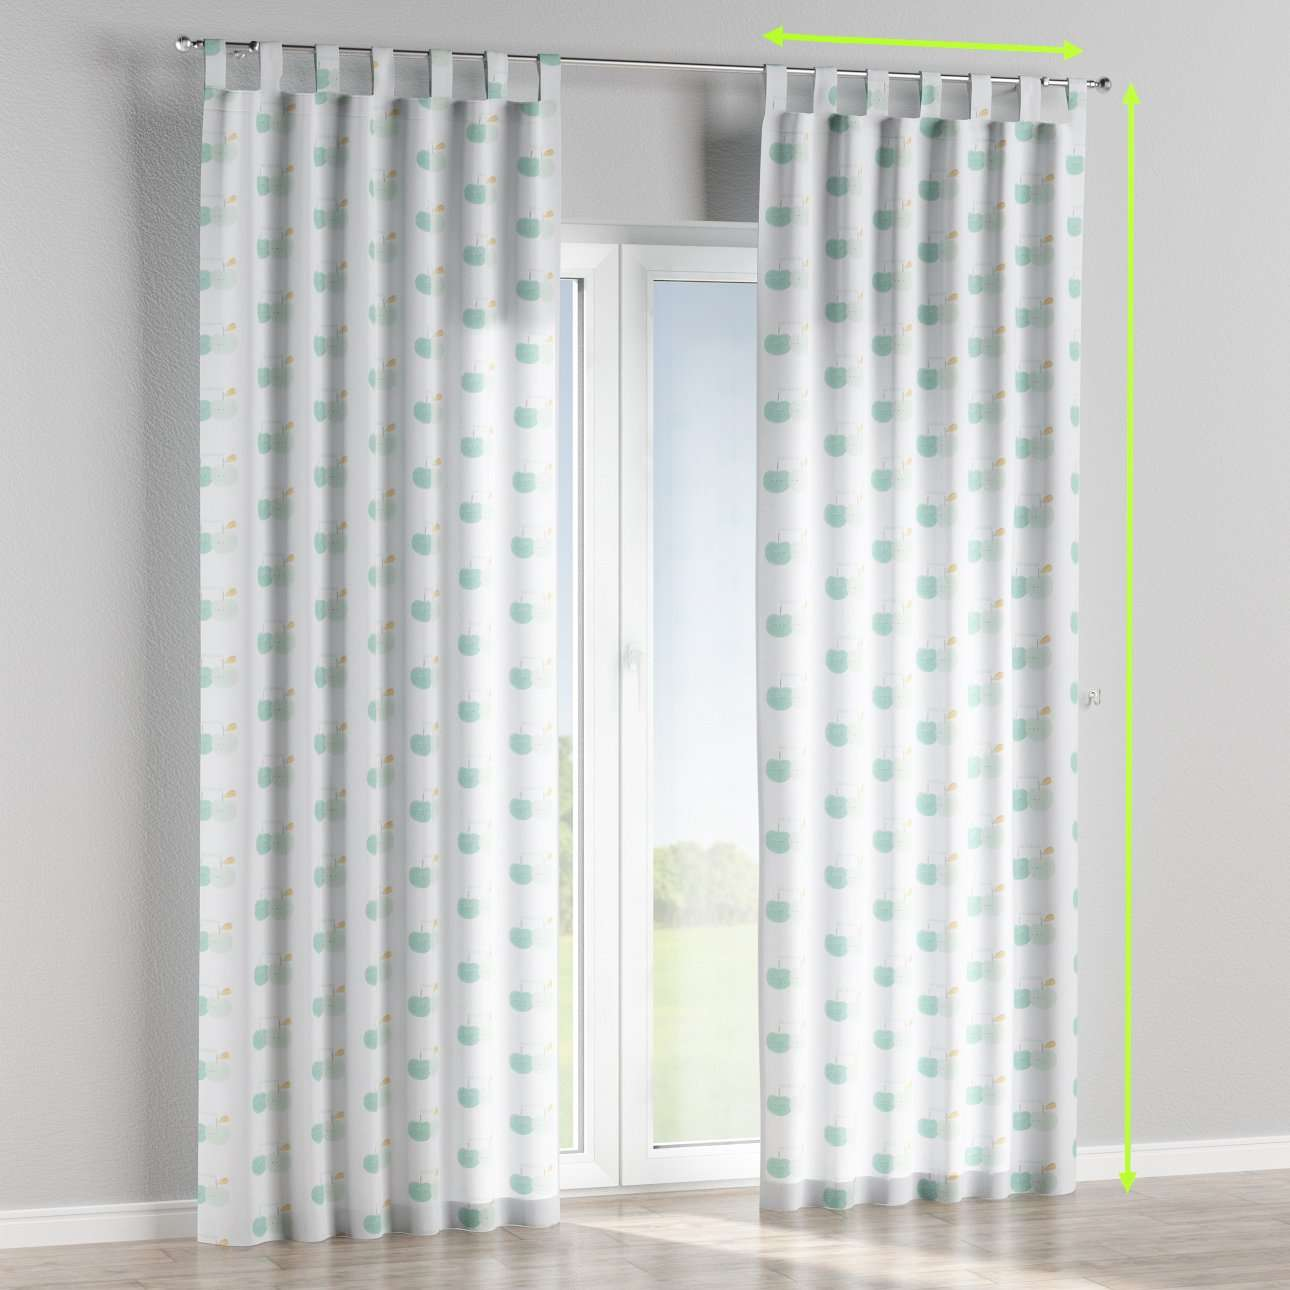 Tab top lined curtains in collection Apanona, fabric: 151-02